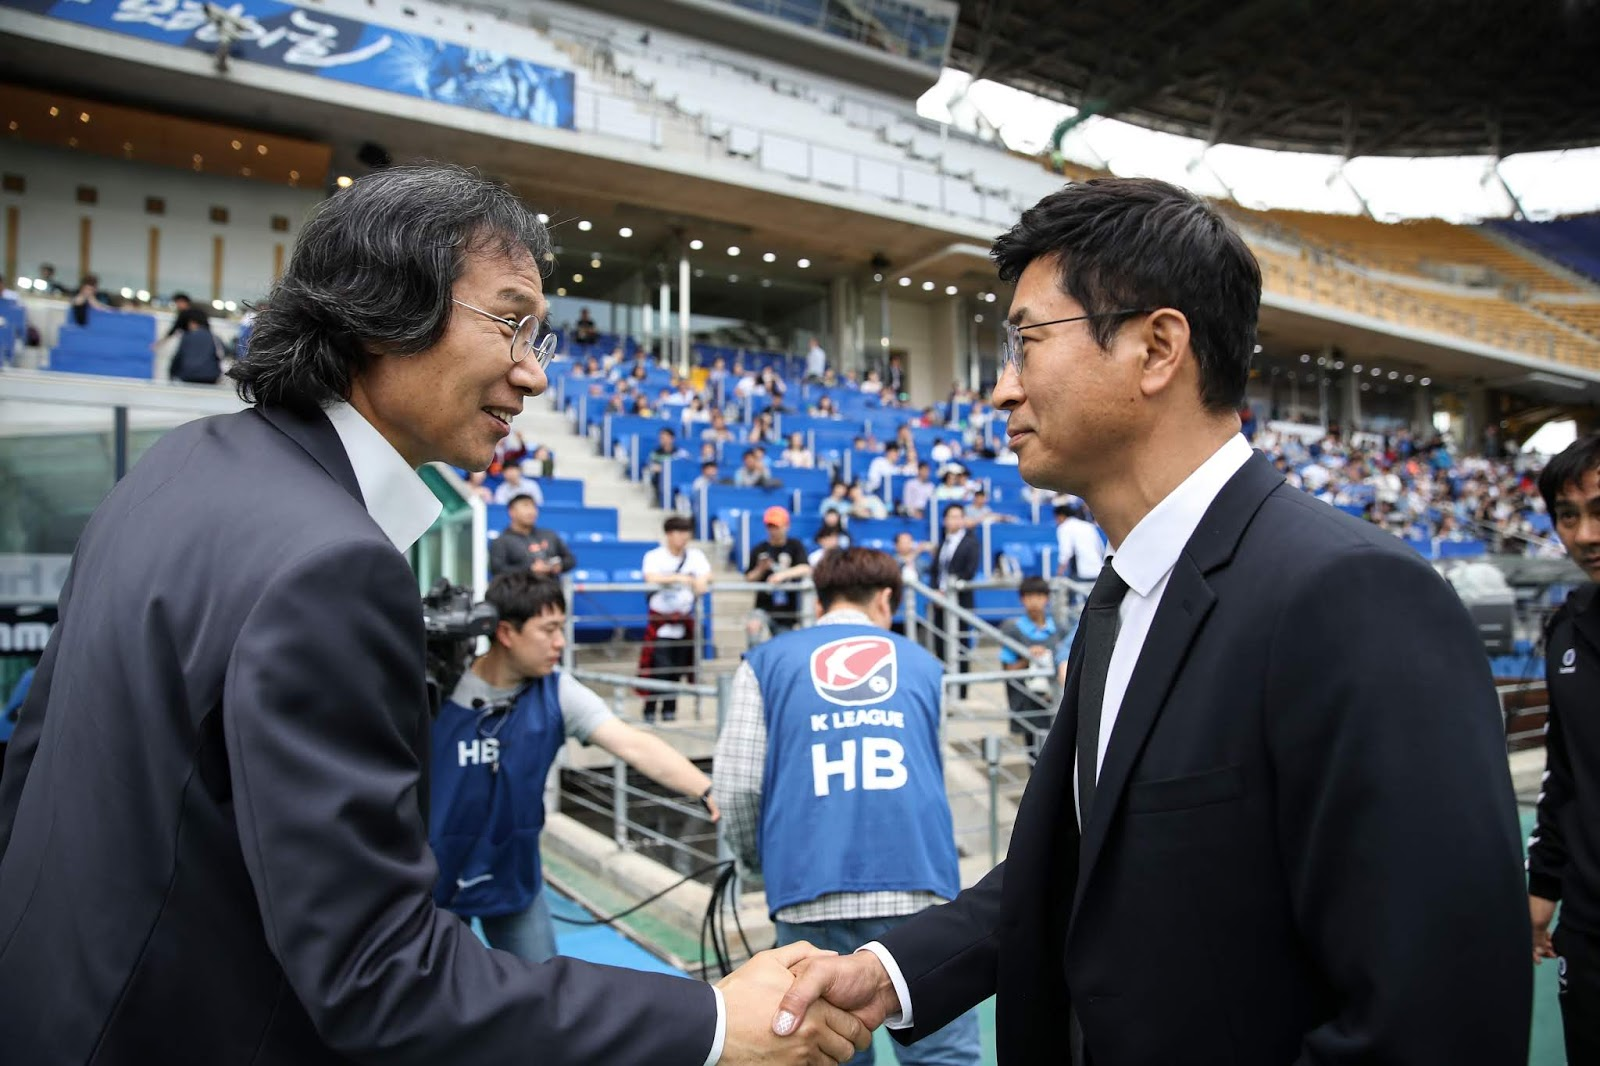 K League 1 East Coast Derby Preview: Ulsan Hyundai vs Pohang Steelers